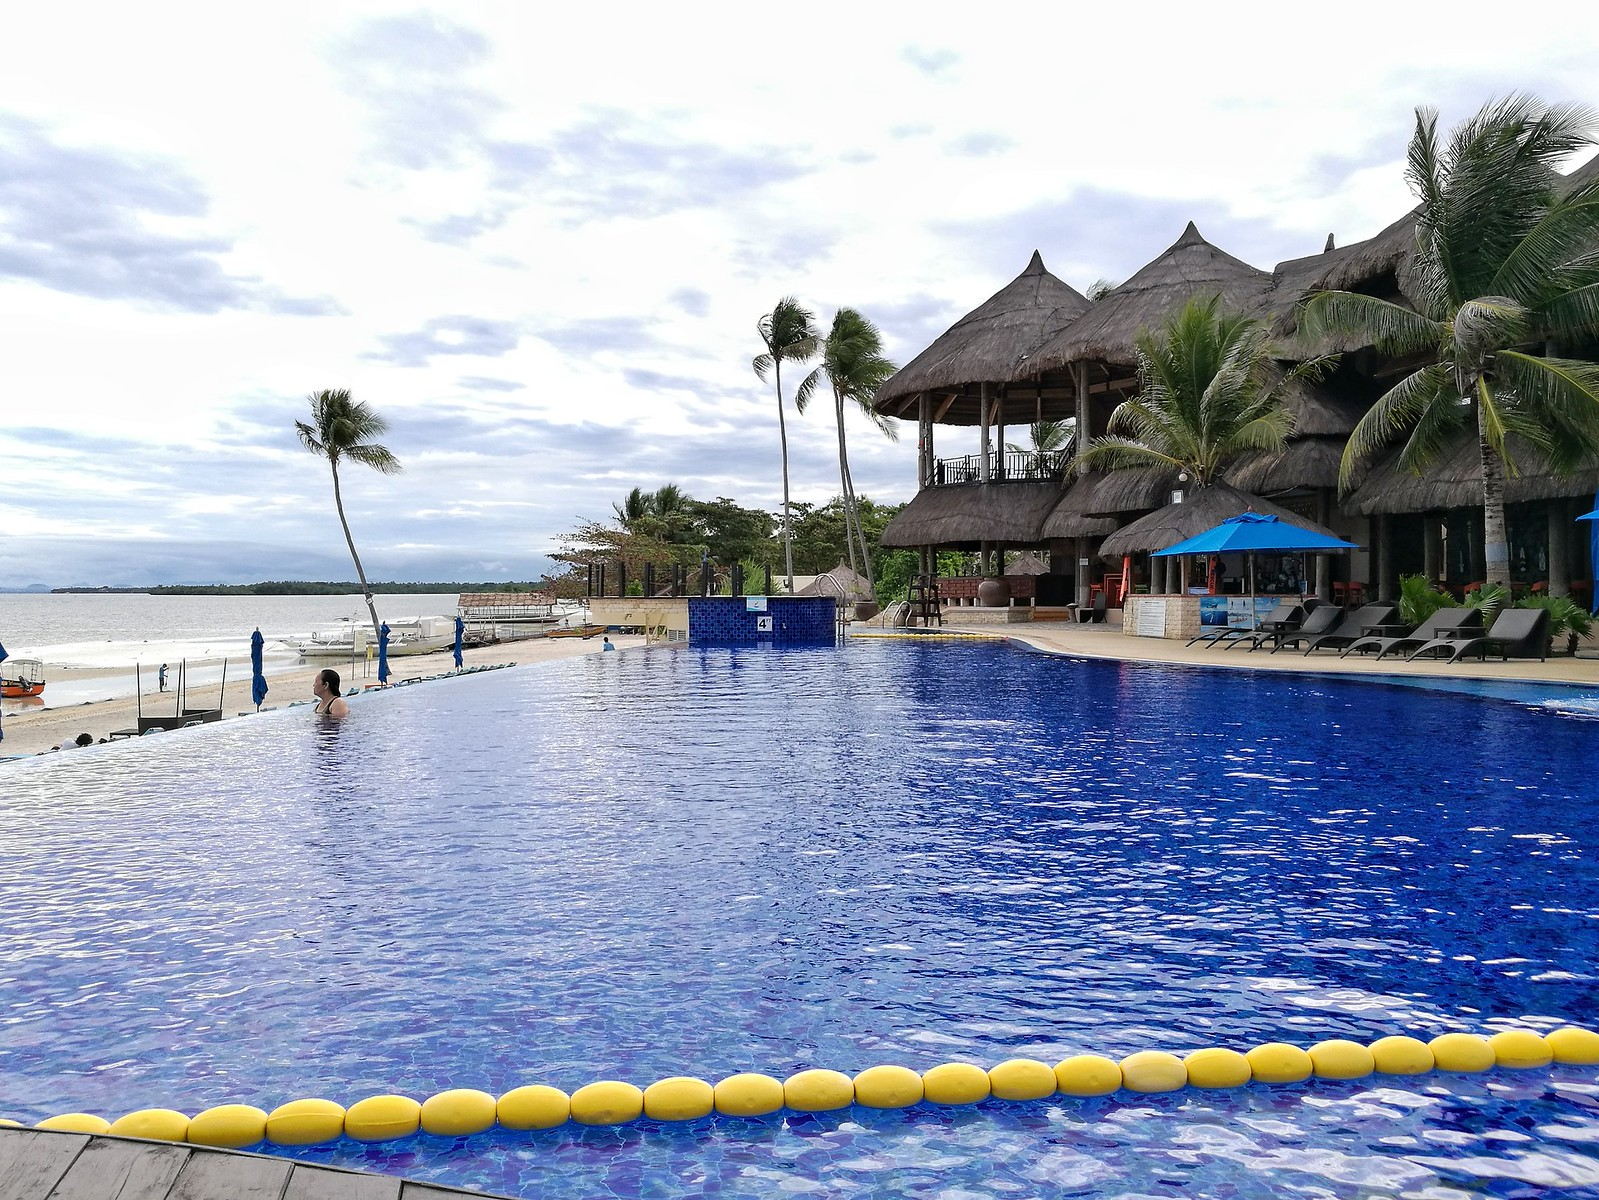 The Bellevue Bohol